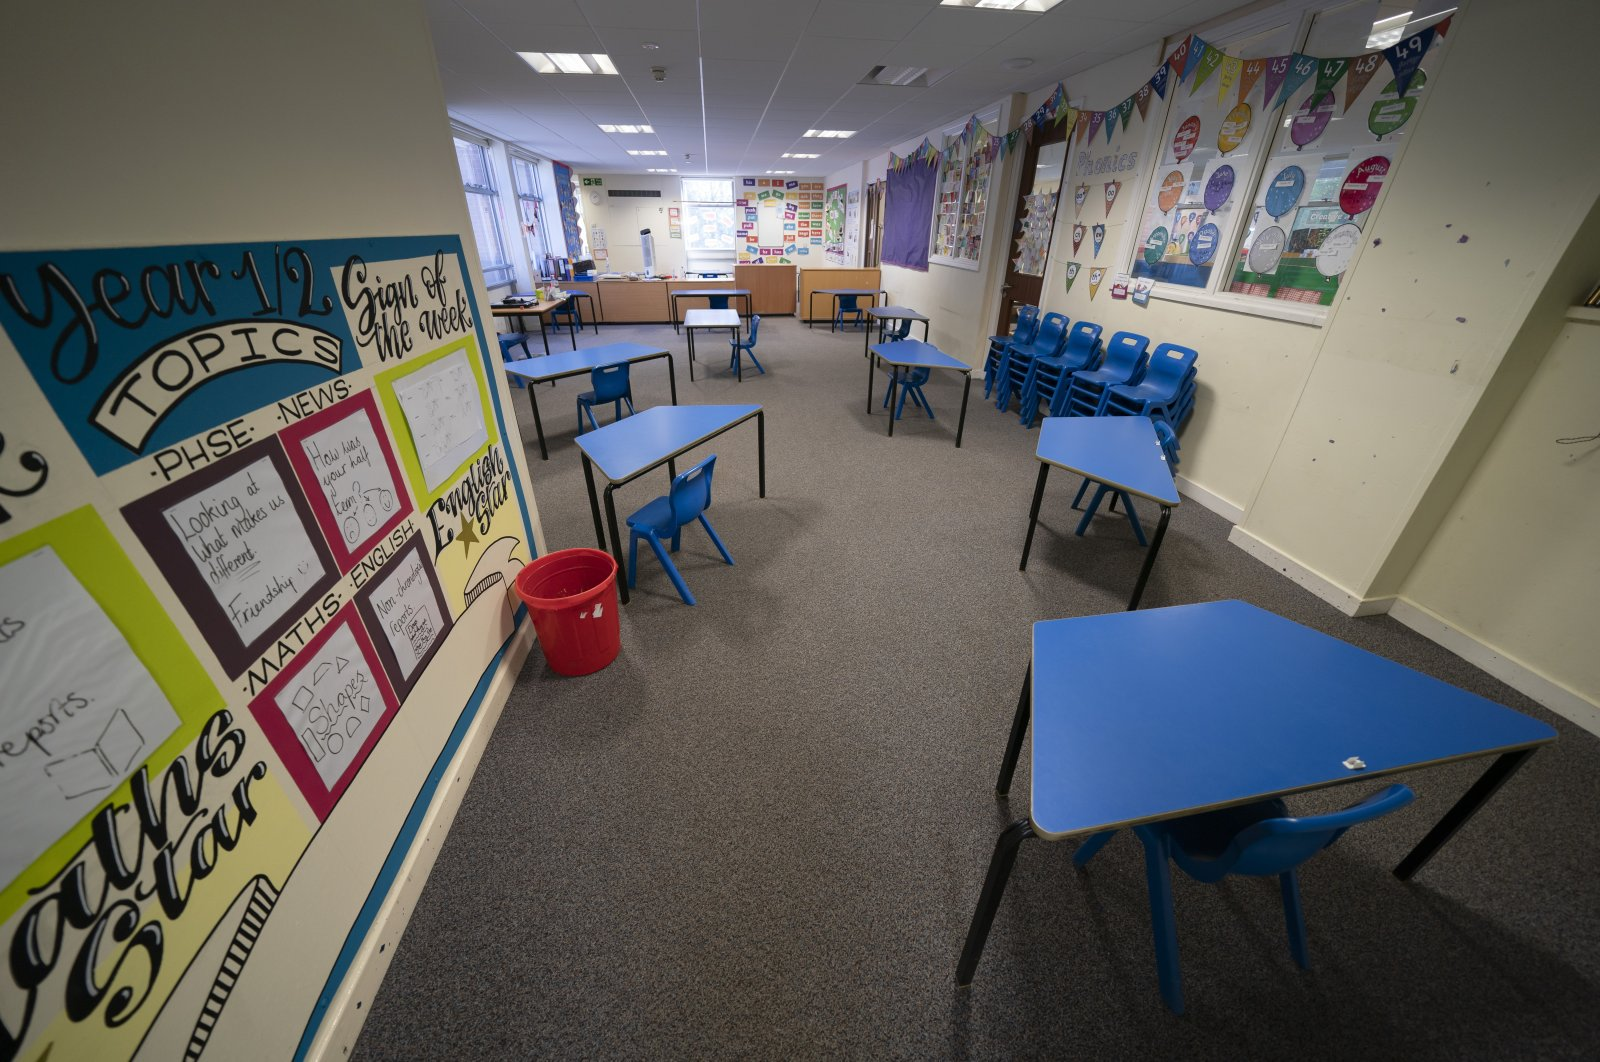 A classroom with safely spaced desks laid out before the possible reopening of Lostock Hall Primary school in Poynton near Manchester, U.K., May 20, 2020. (AP Photo)